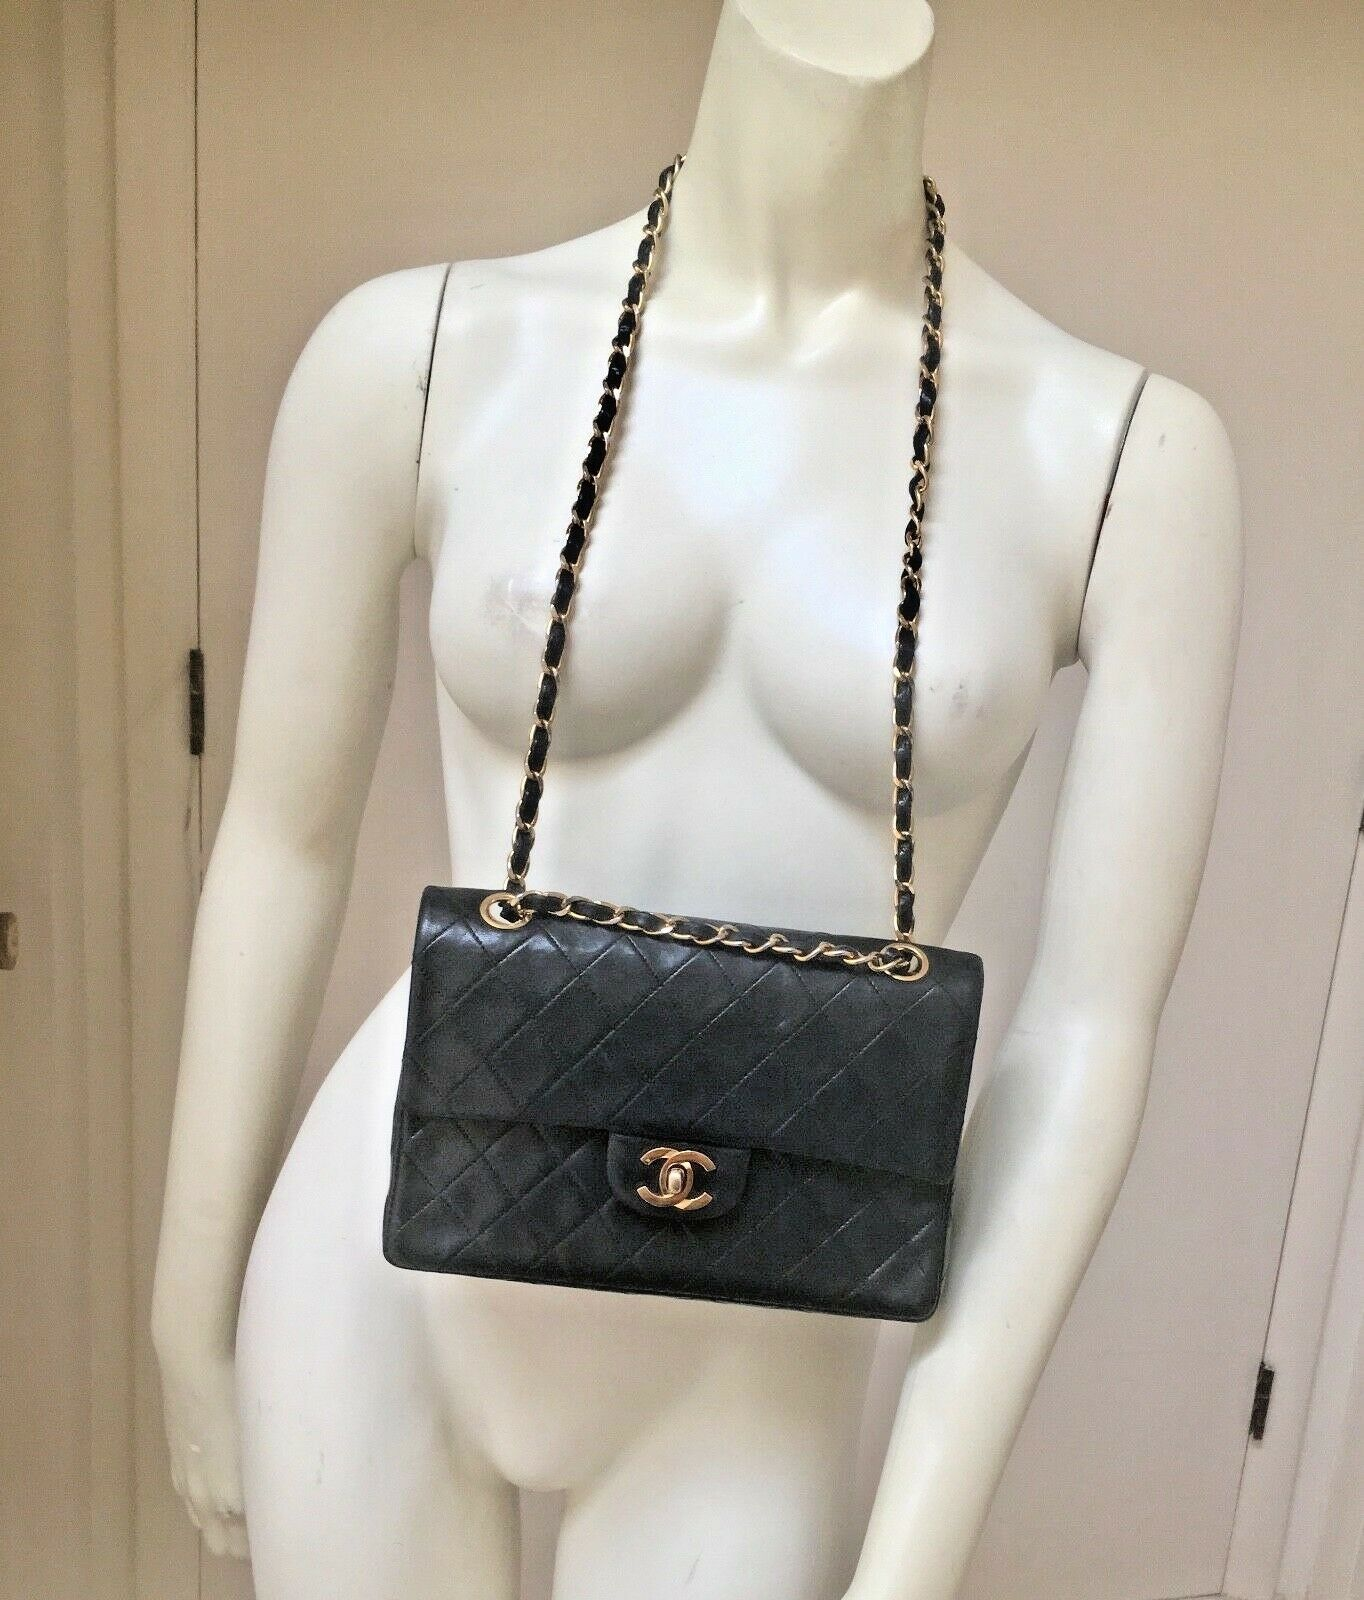 dfde8909e89d Chanel Classic Black Quilted lambskin Vintage 1980s Medium DBL flap GHW  France